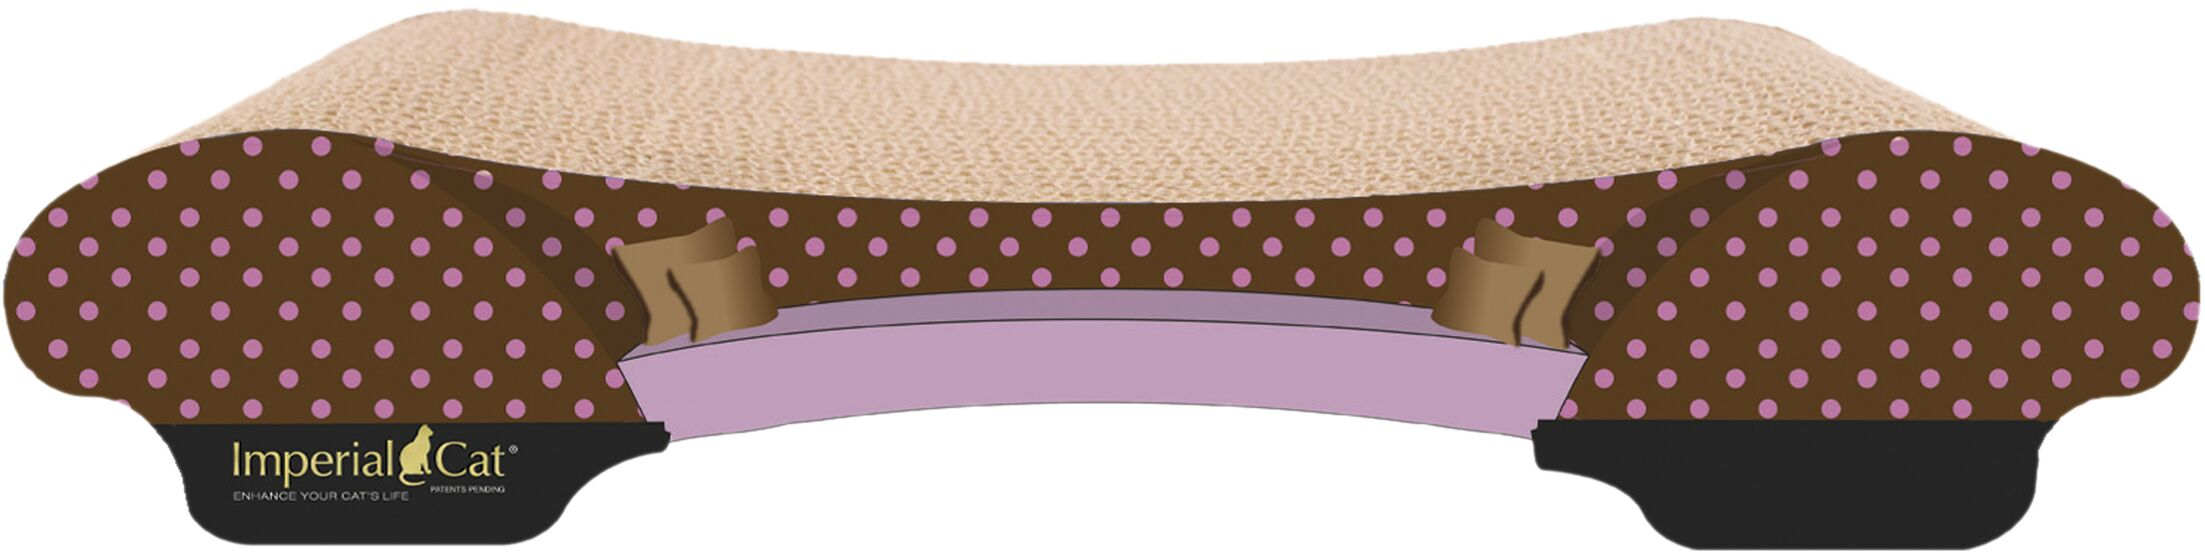 Scratch 'n Shapes Bella Sofa Recycled Paper Scratching Board Pattern: Pink Polka Dot